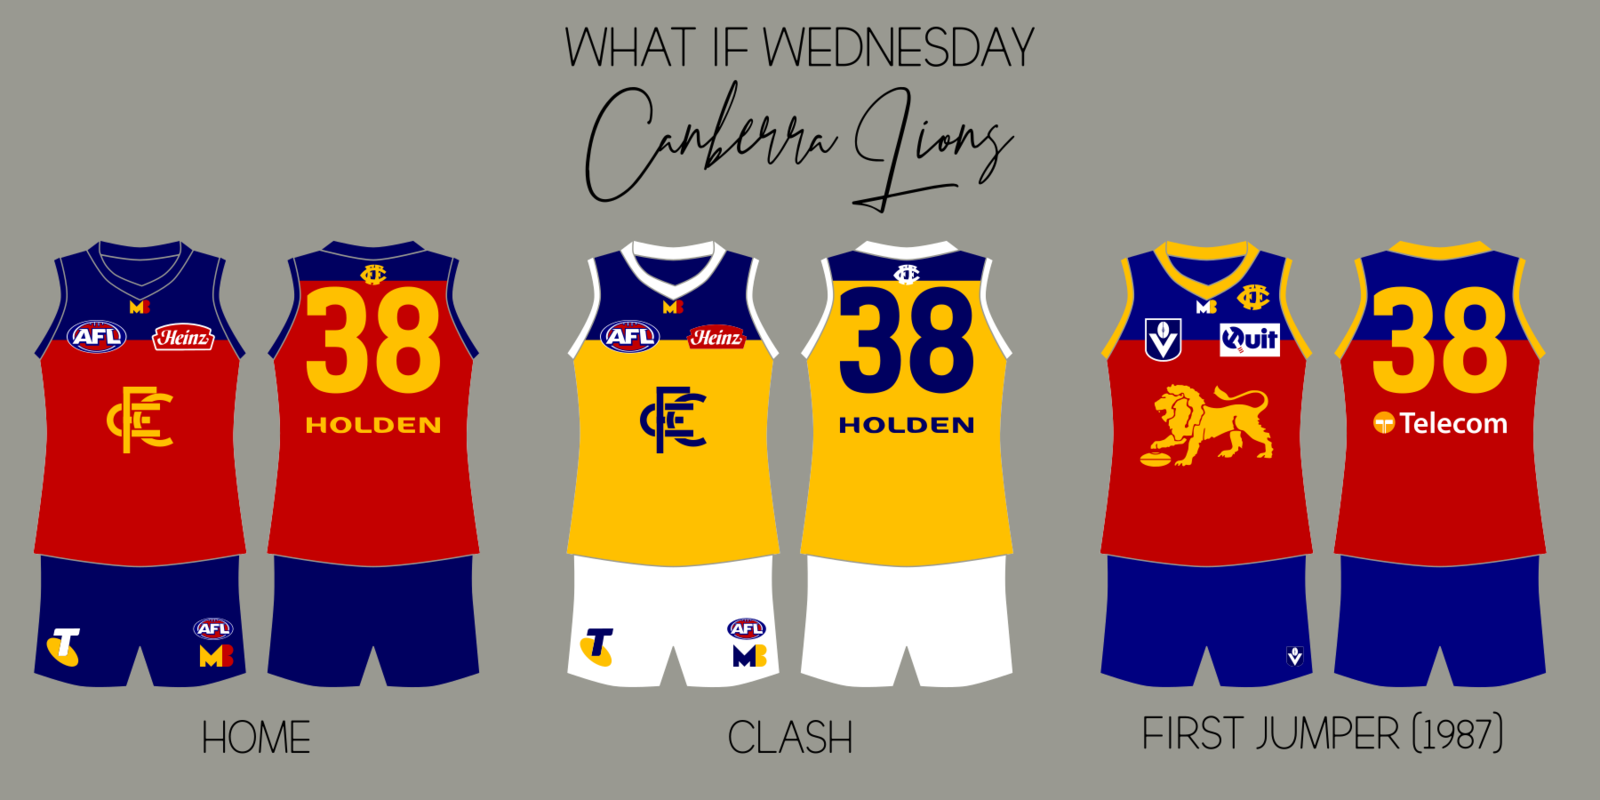 x05 Canberra Lions.png